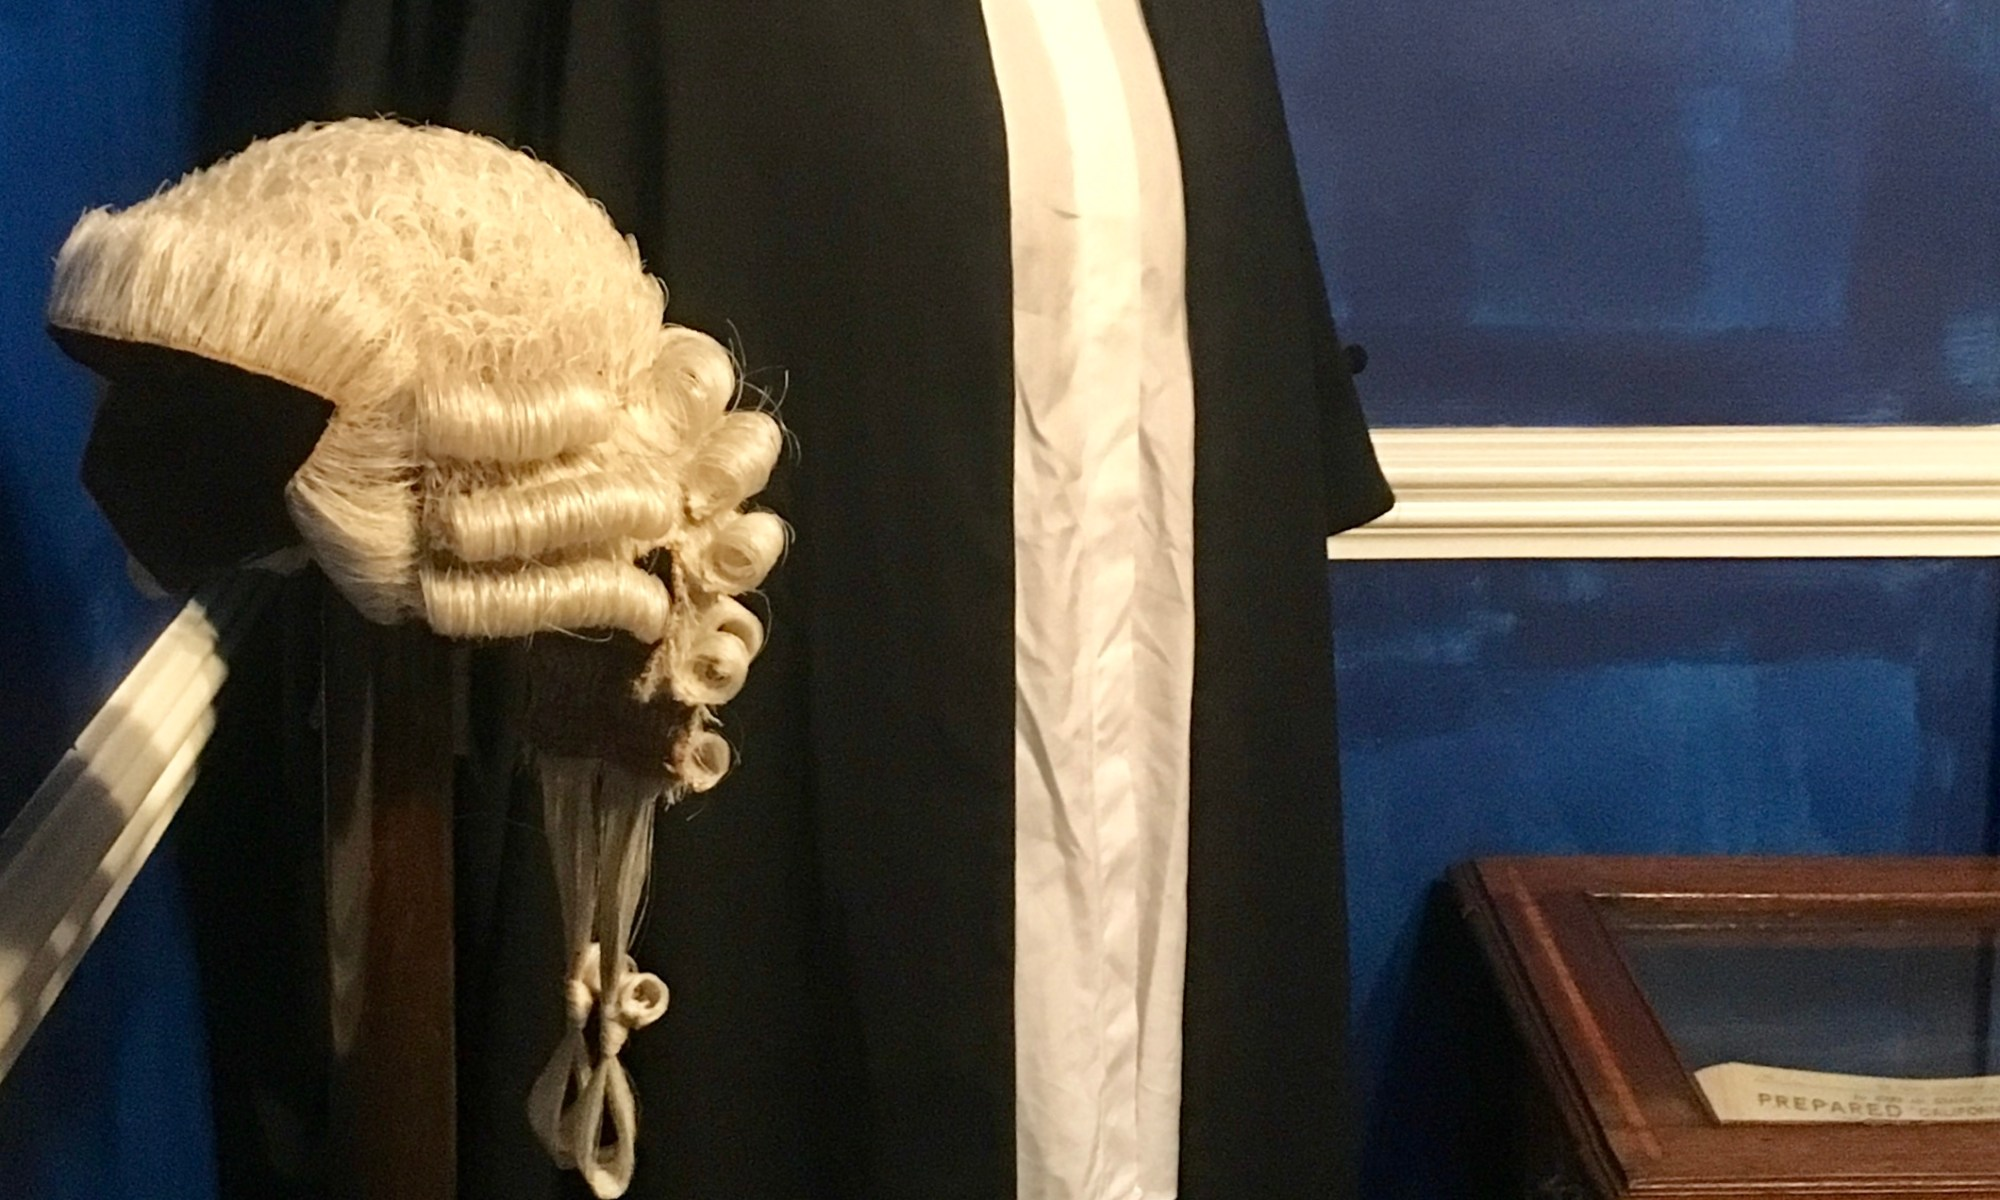 The Barrister's wig and gown displayed in the corner of the new floor 'Murder and the Barrister'